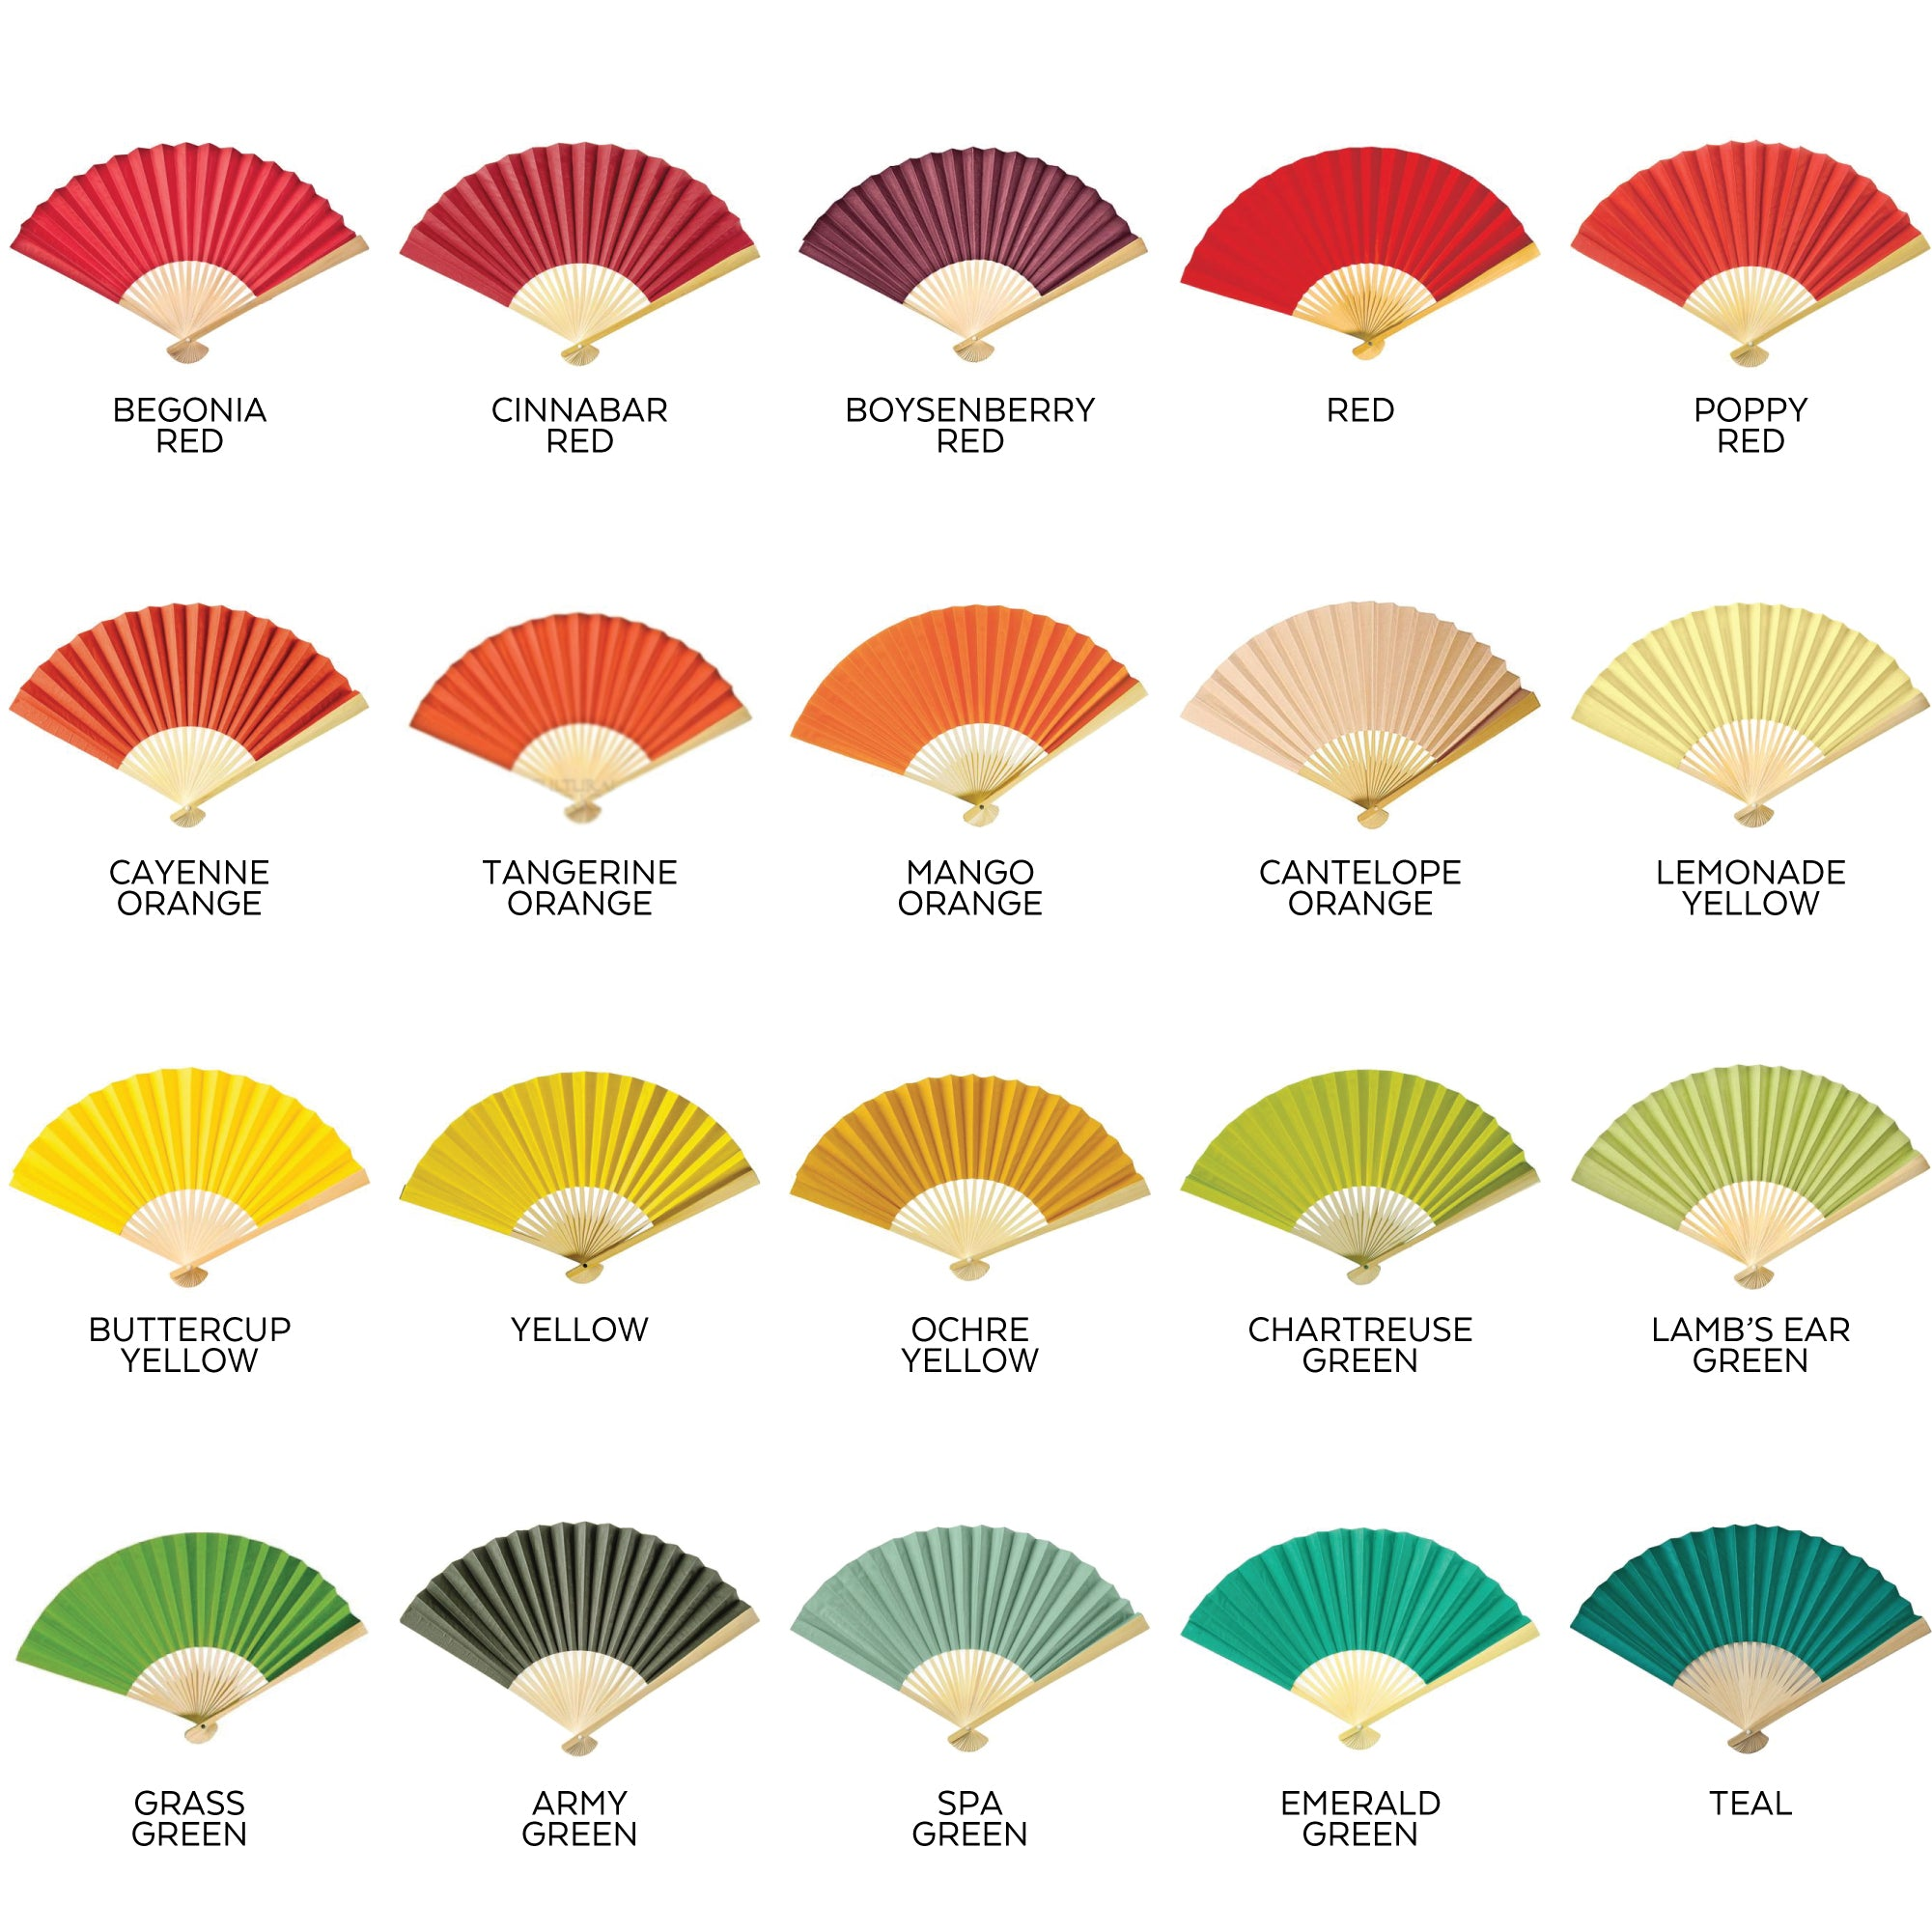 hand fan colors 2